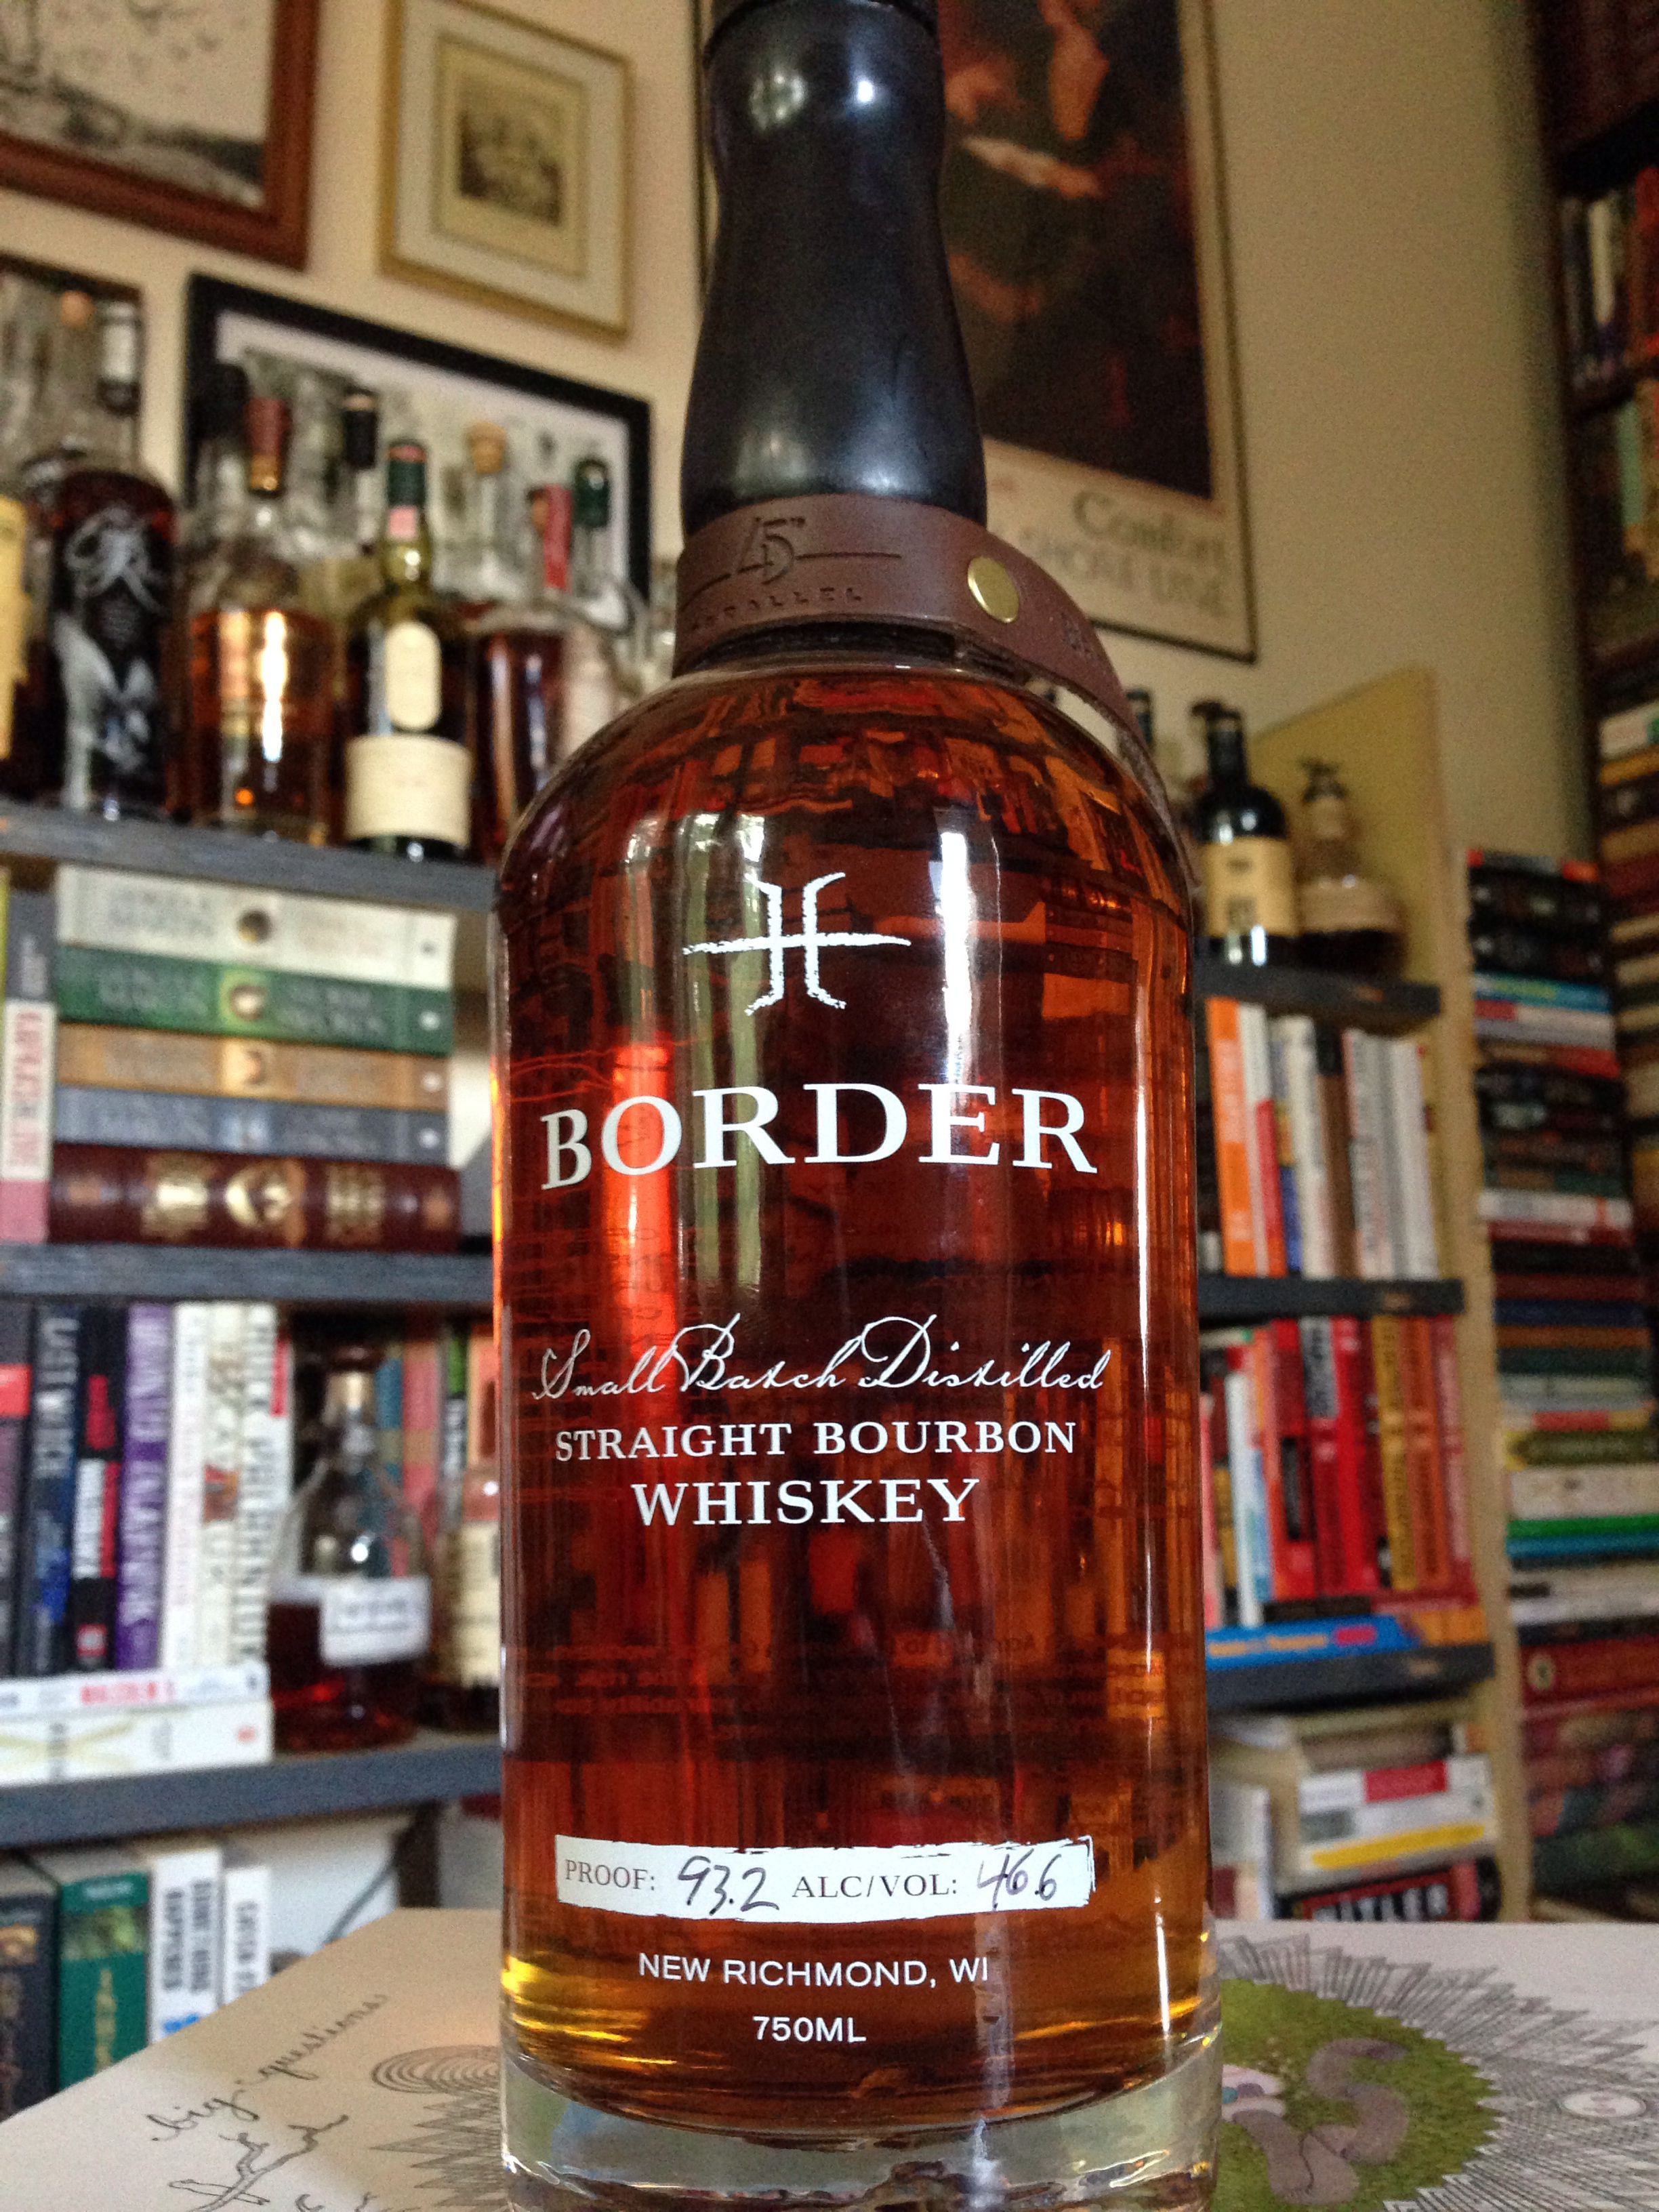 45th Parallel Spirits Border Bourbon Small Batch Distilled Straight Bourbon Whiskey 93 2 Proof 2 Yrs 45 As Much As Whiskey Bourbon Bourbon Whiskey